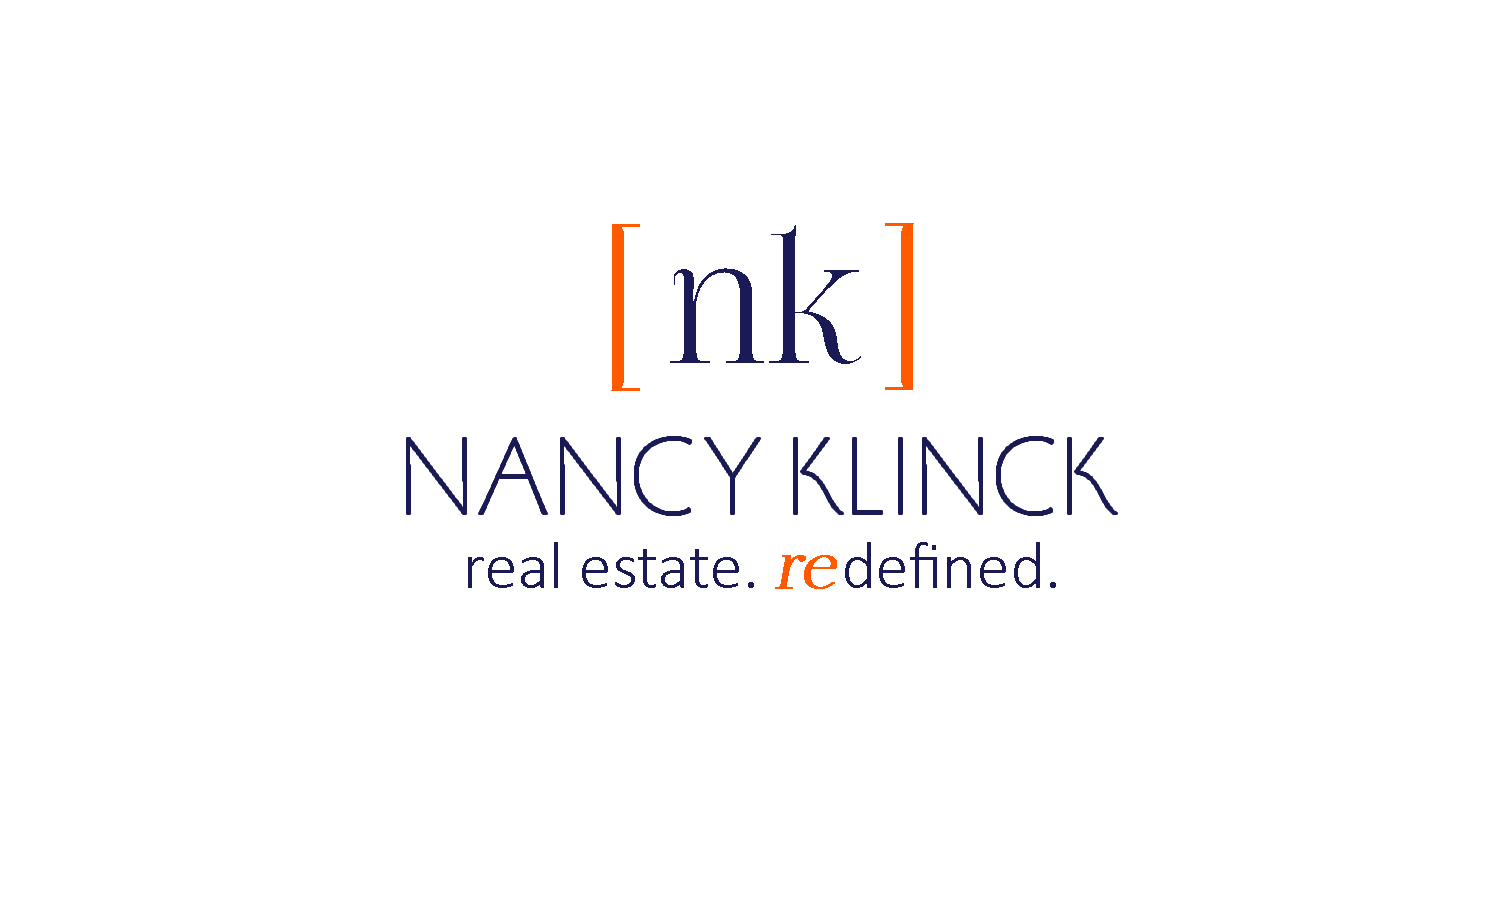 Logo Drafts - Nancy Klinck1.jpg